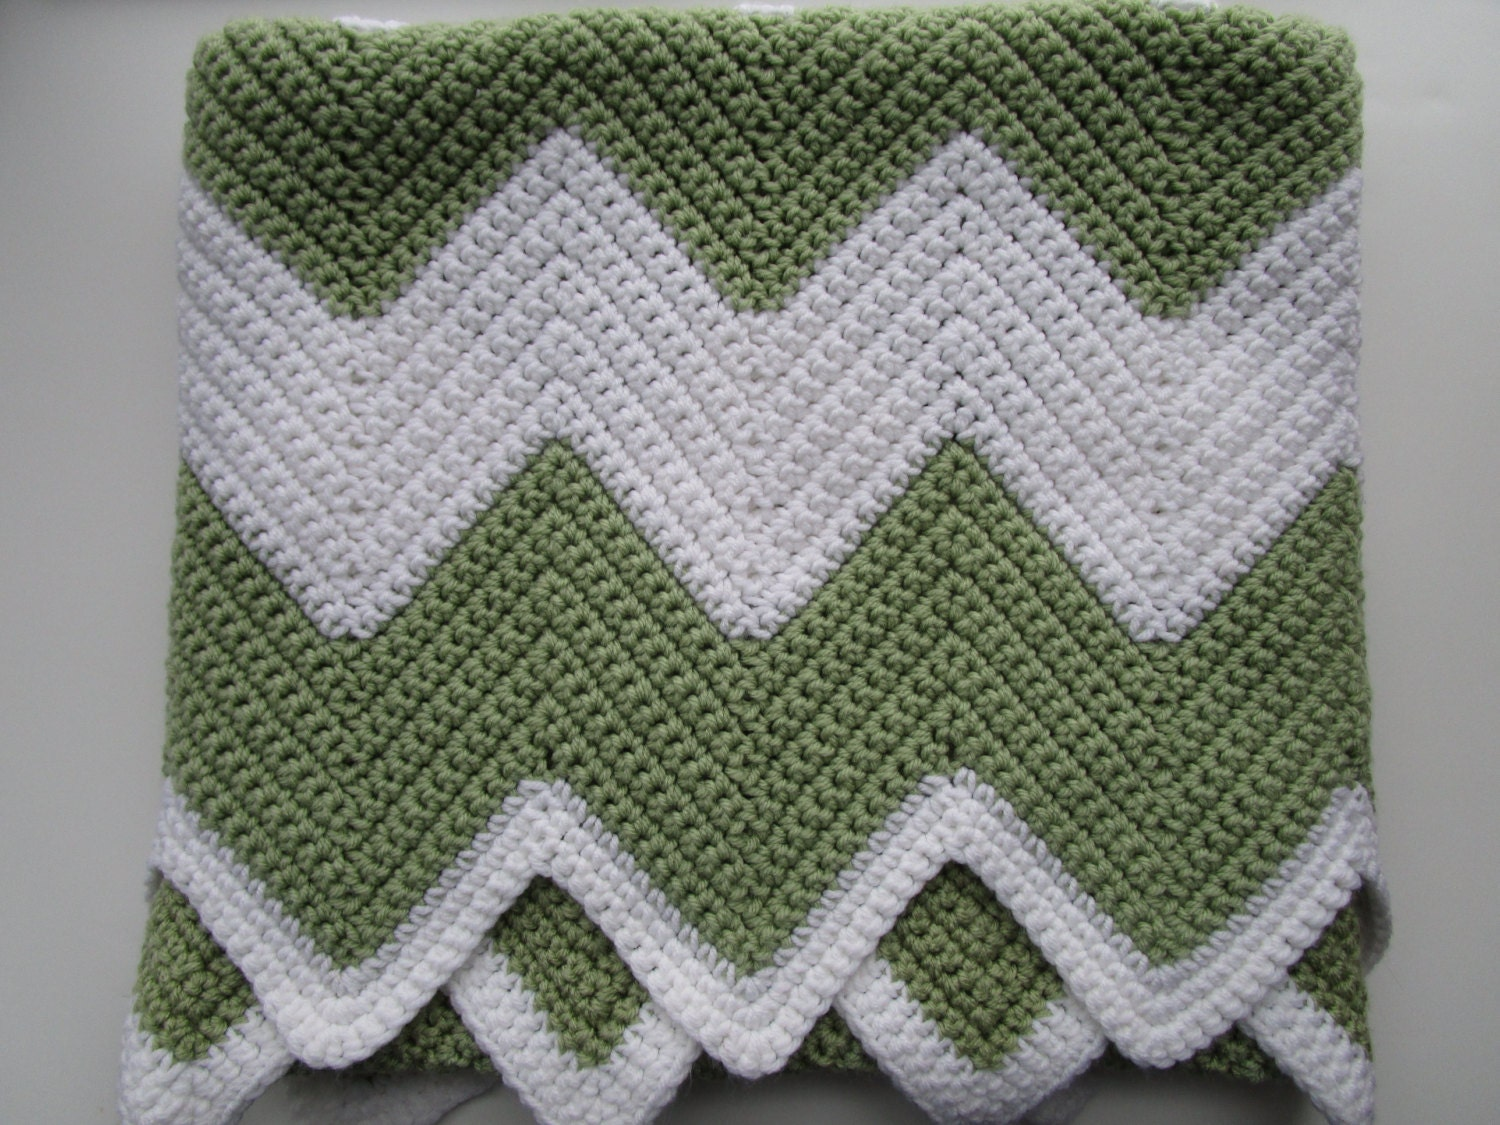 Free Pattern Crochet Chevron Baby Blanket : Crochet Chevron Baby Blanket www.galleryhip.com - The ...